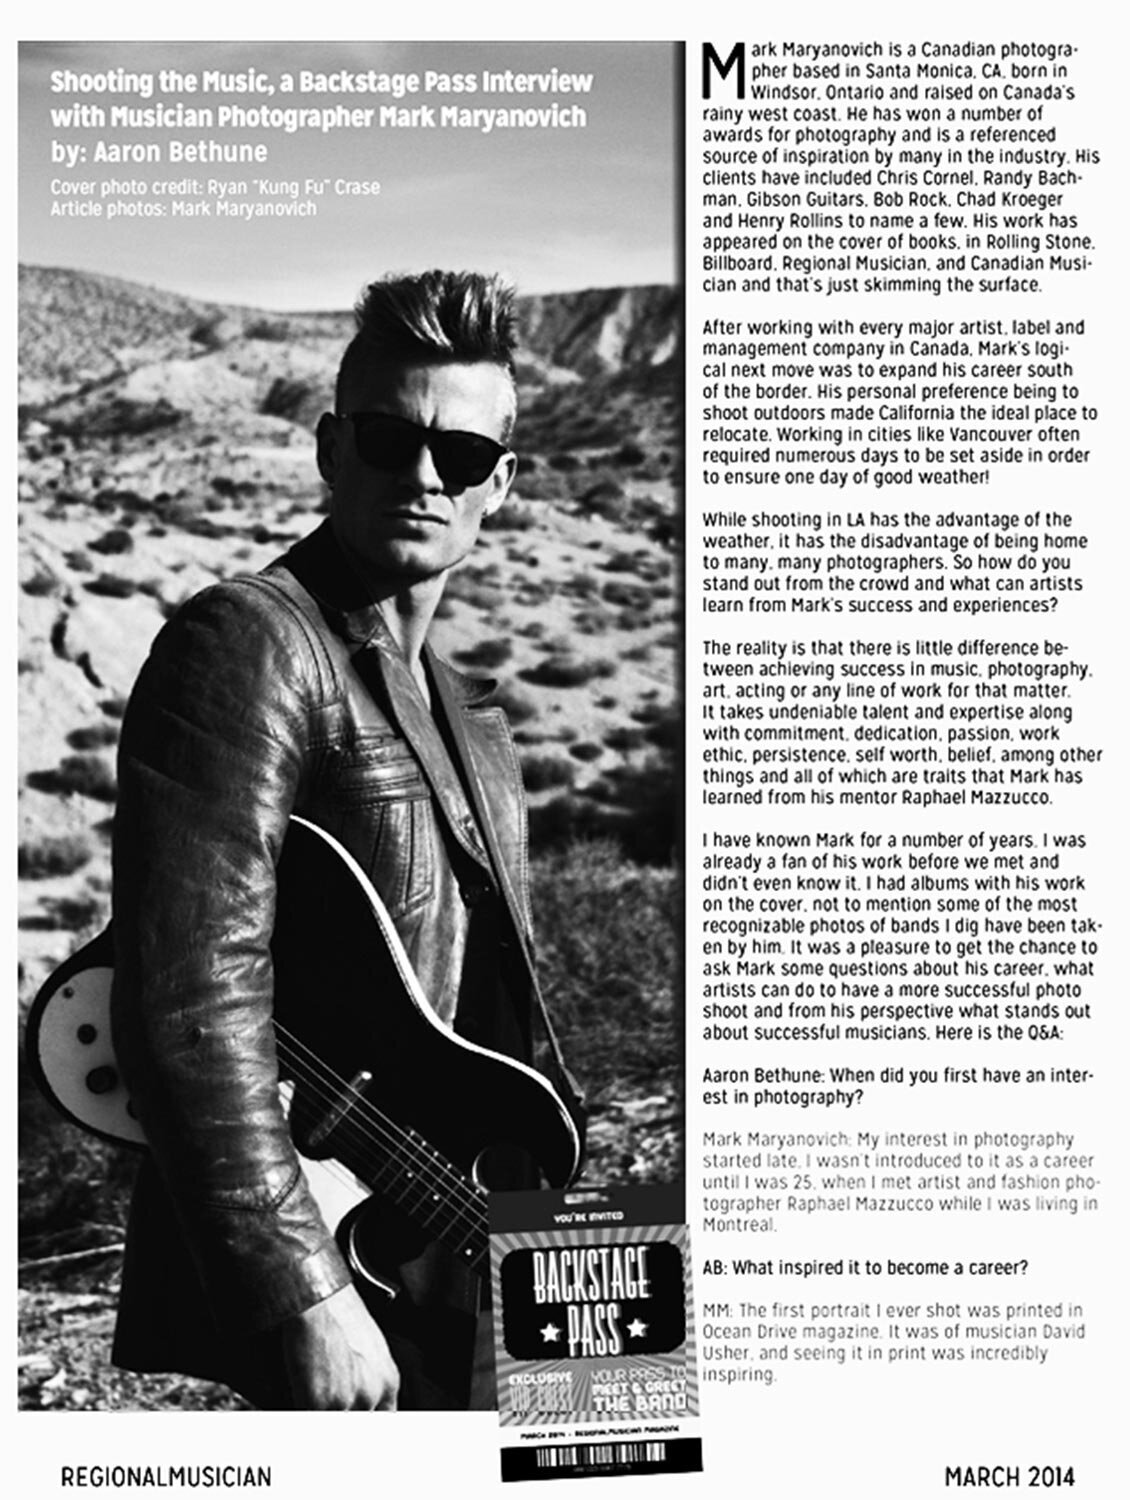 interview-mark-maryanovich-regional-musician-magazine-page-1-los-angeles